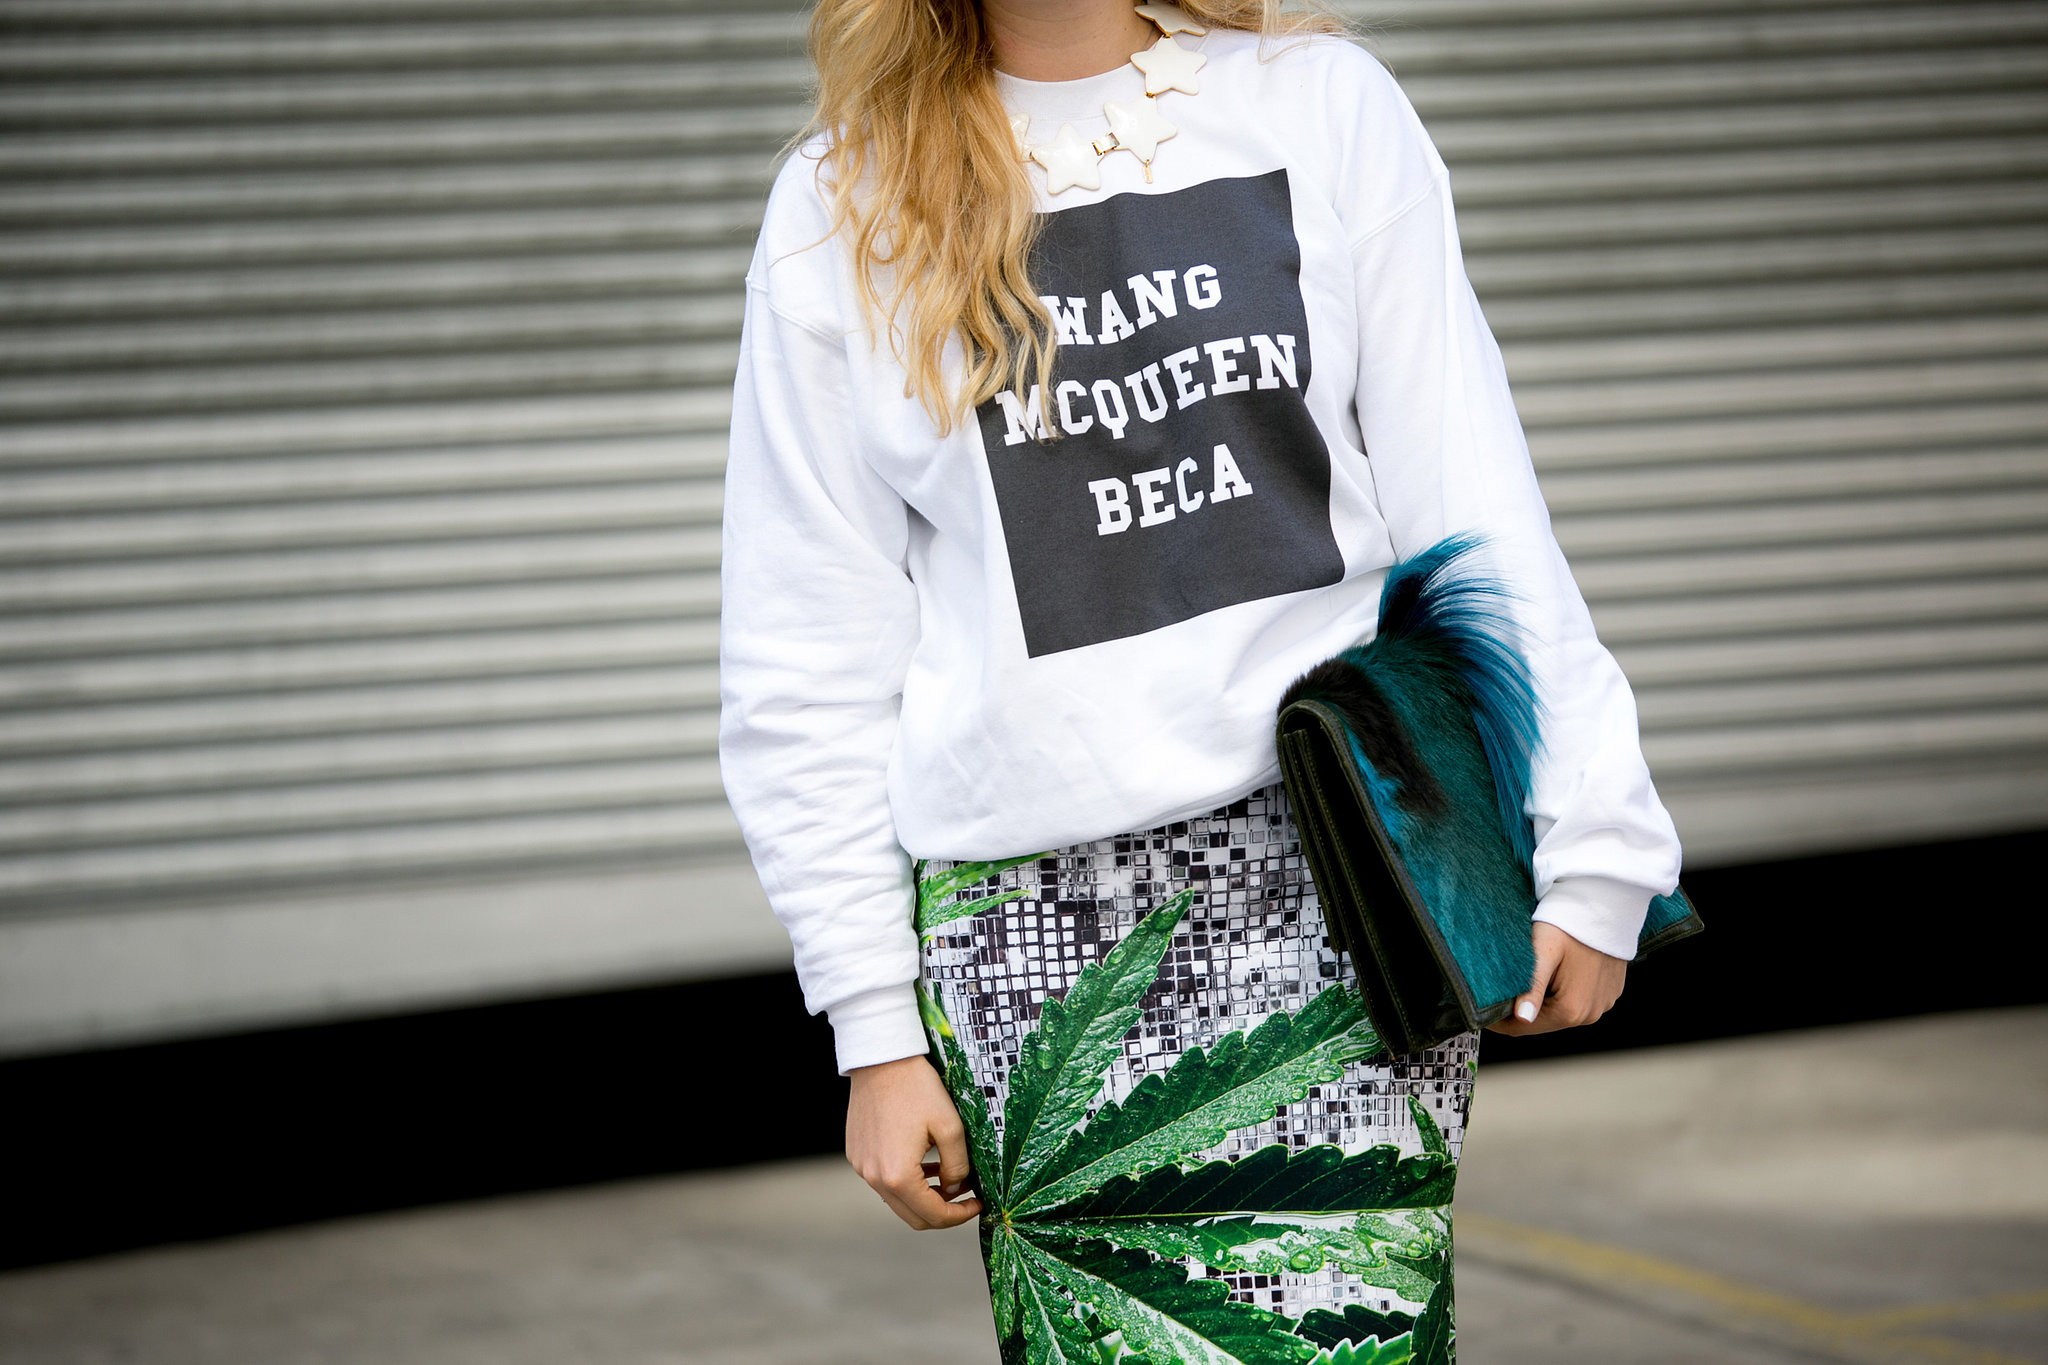 Very apropos Fashion Week gear, no?